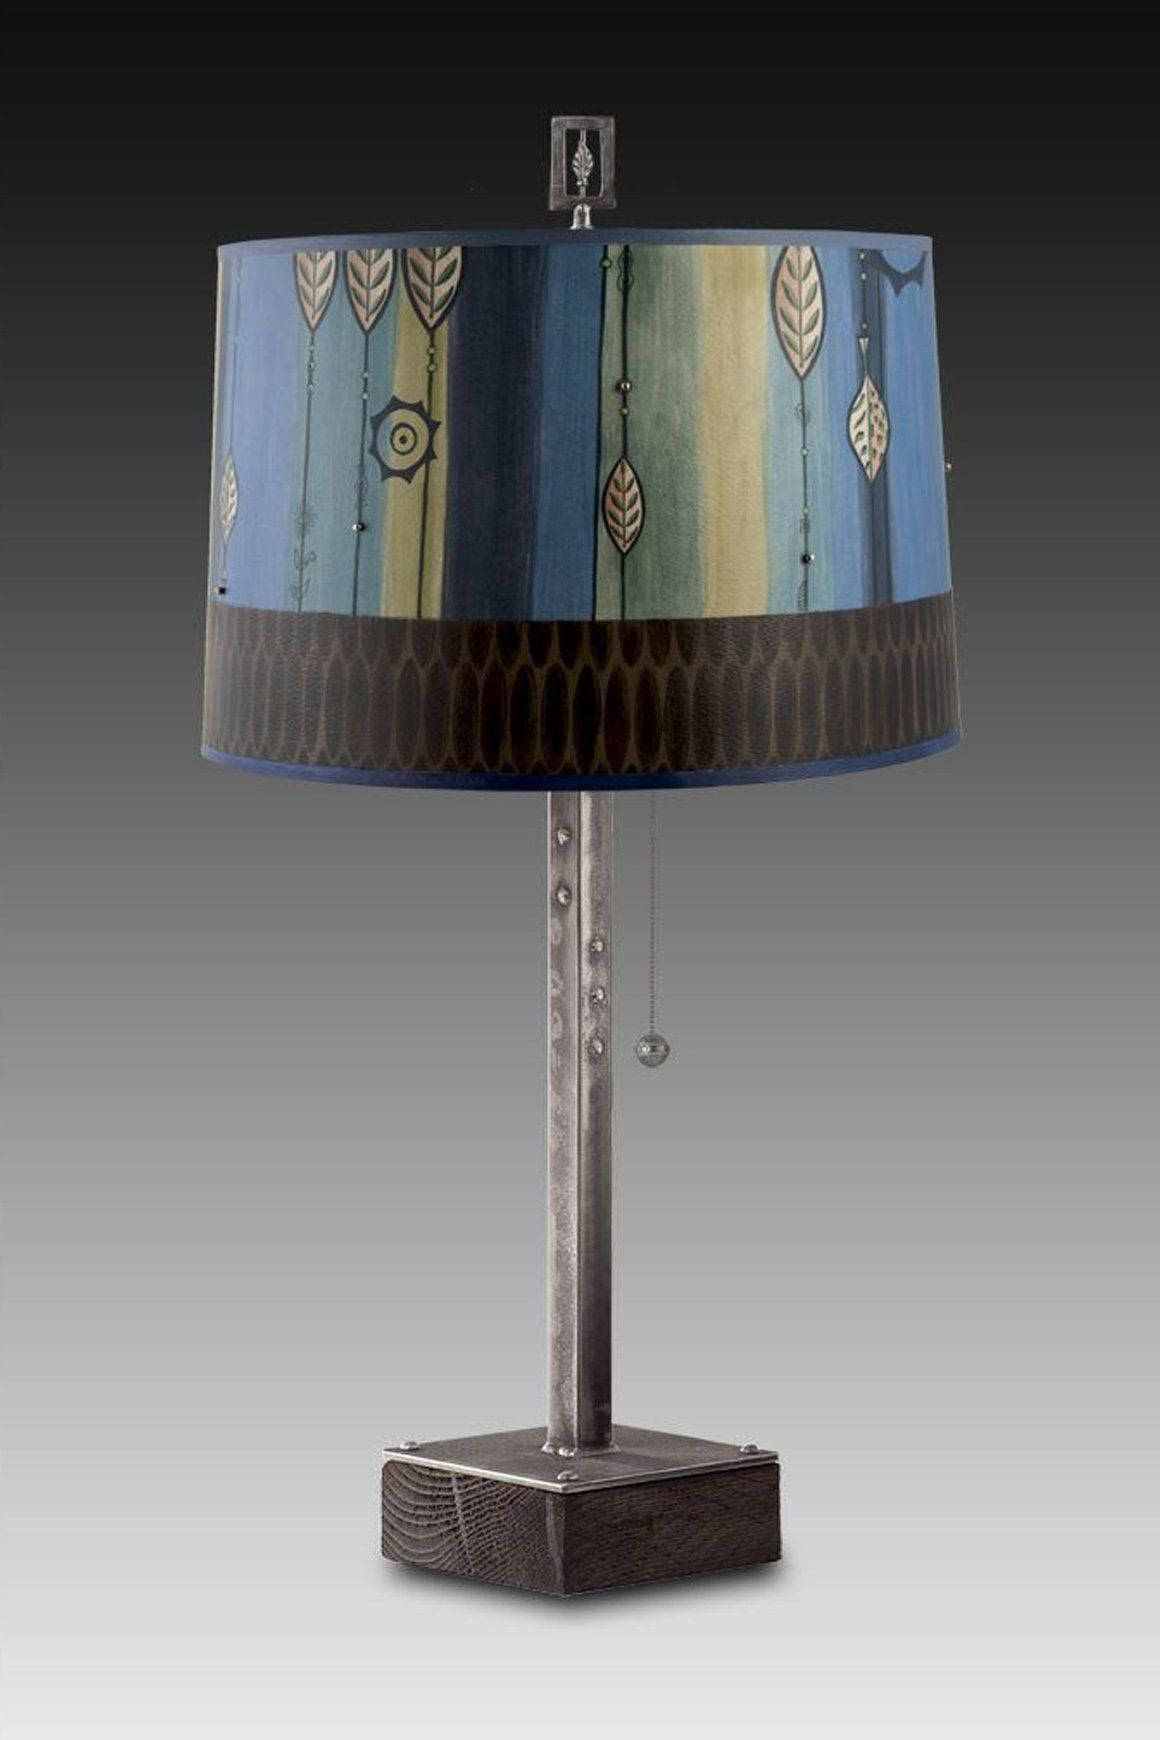 Steel Table Lamp on Wood with Large Drum Shade in Leaf Stripe Blues